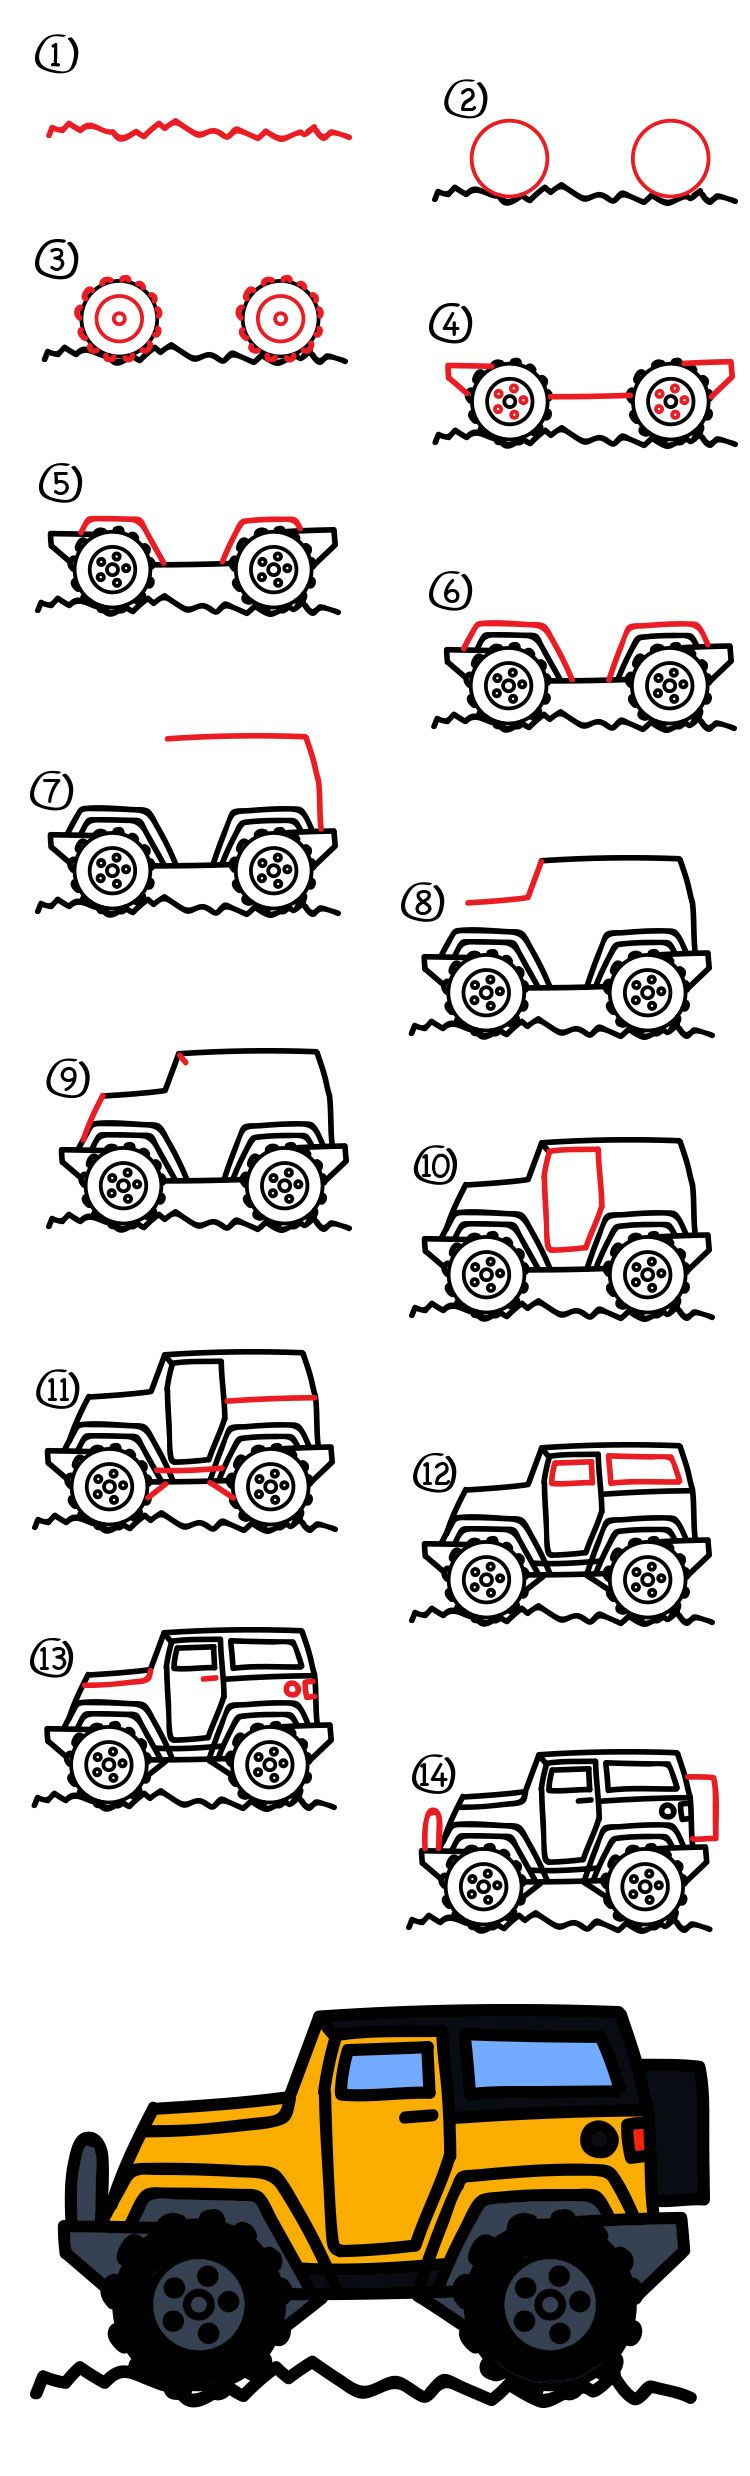 Easy Jeep Drawing : drawing, Drawing, Kids,